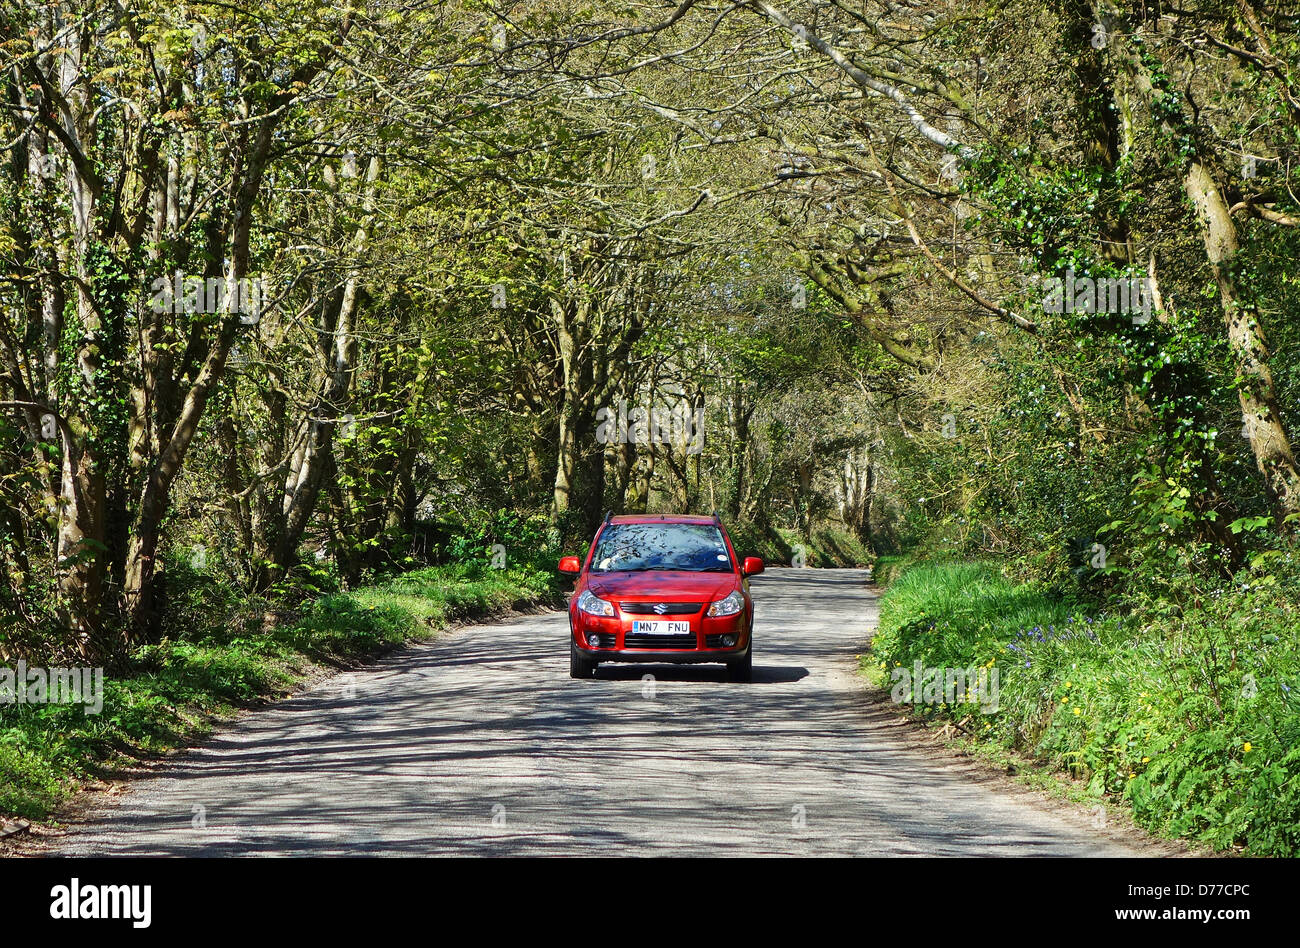 A red car driving along a woodland road - Stock Image